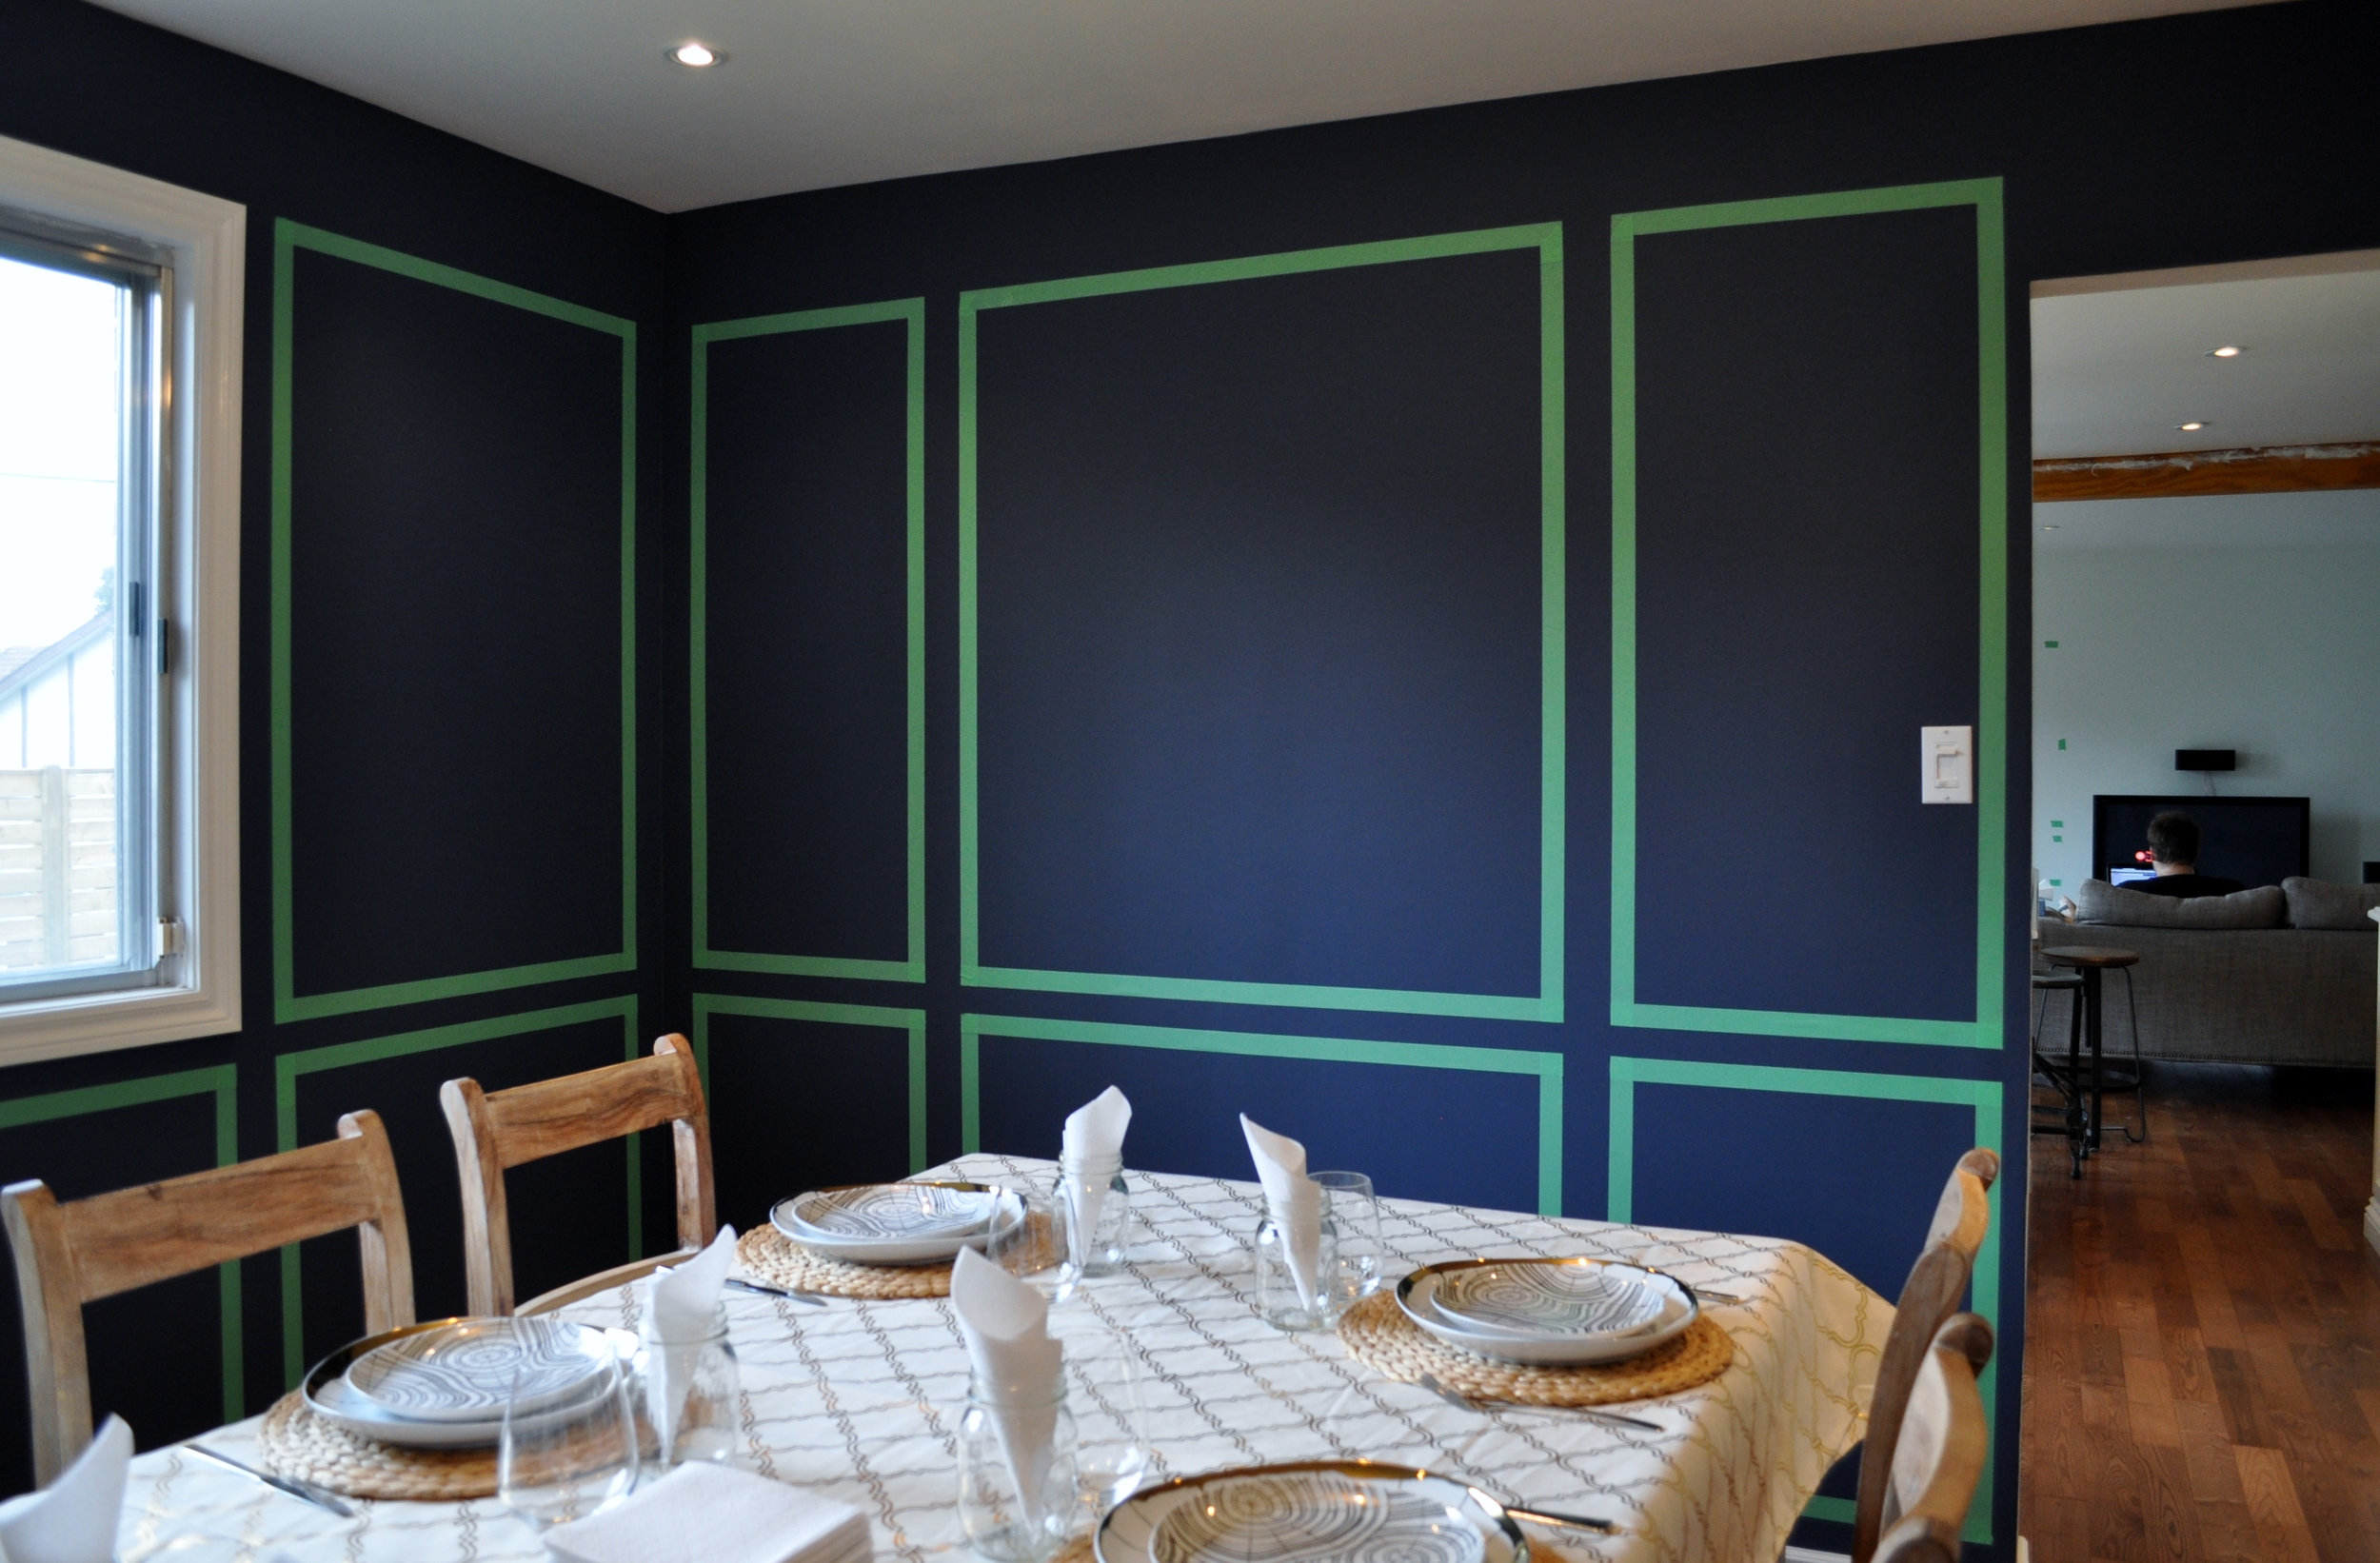 Dining Room Paneling Mock-up 2